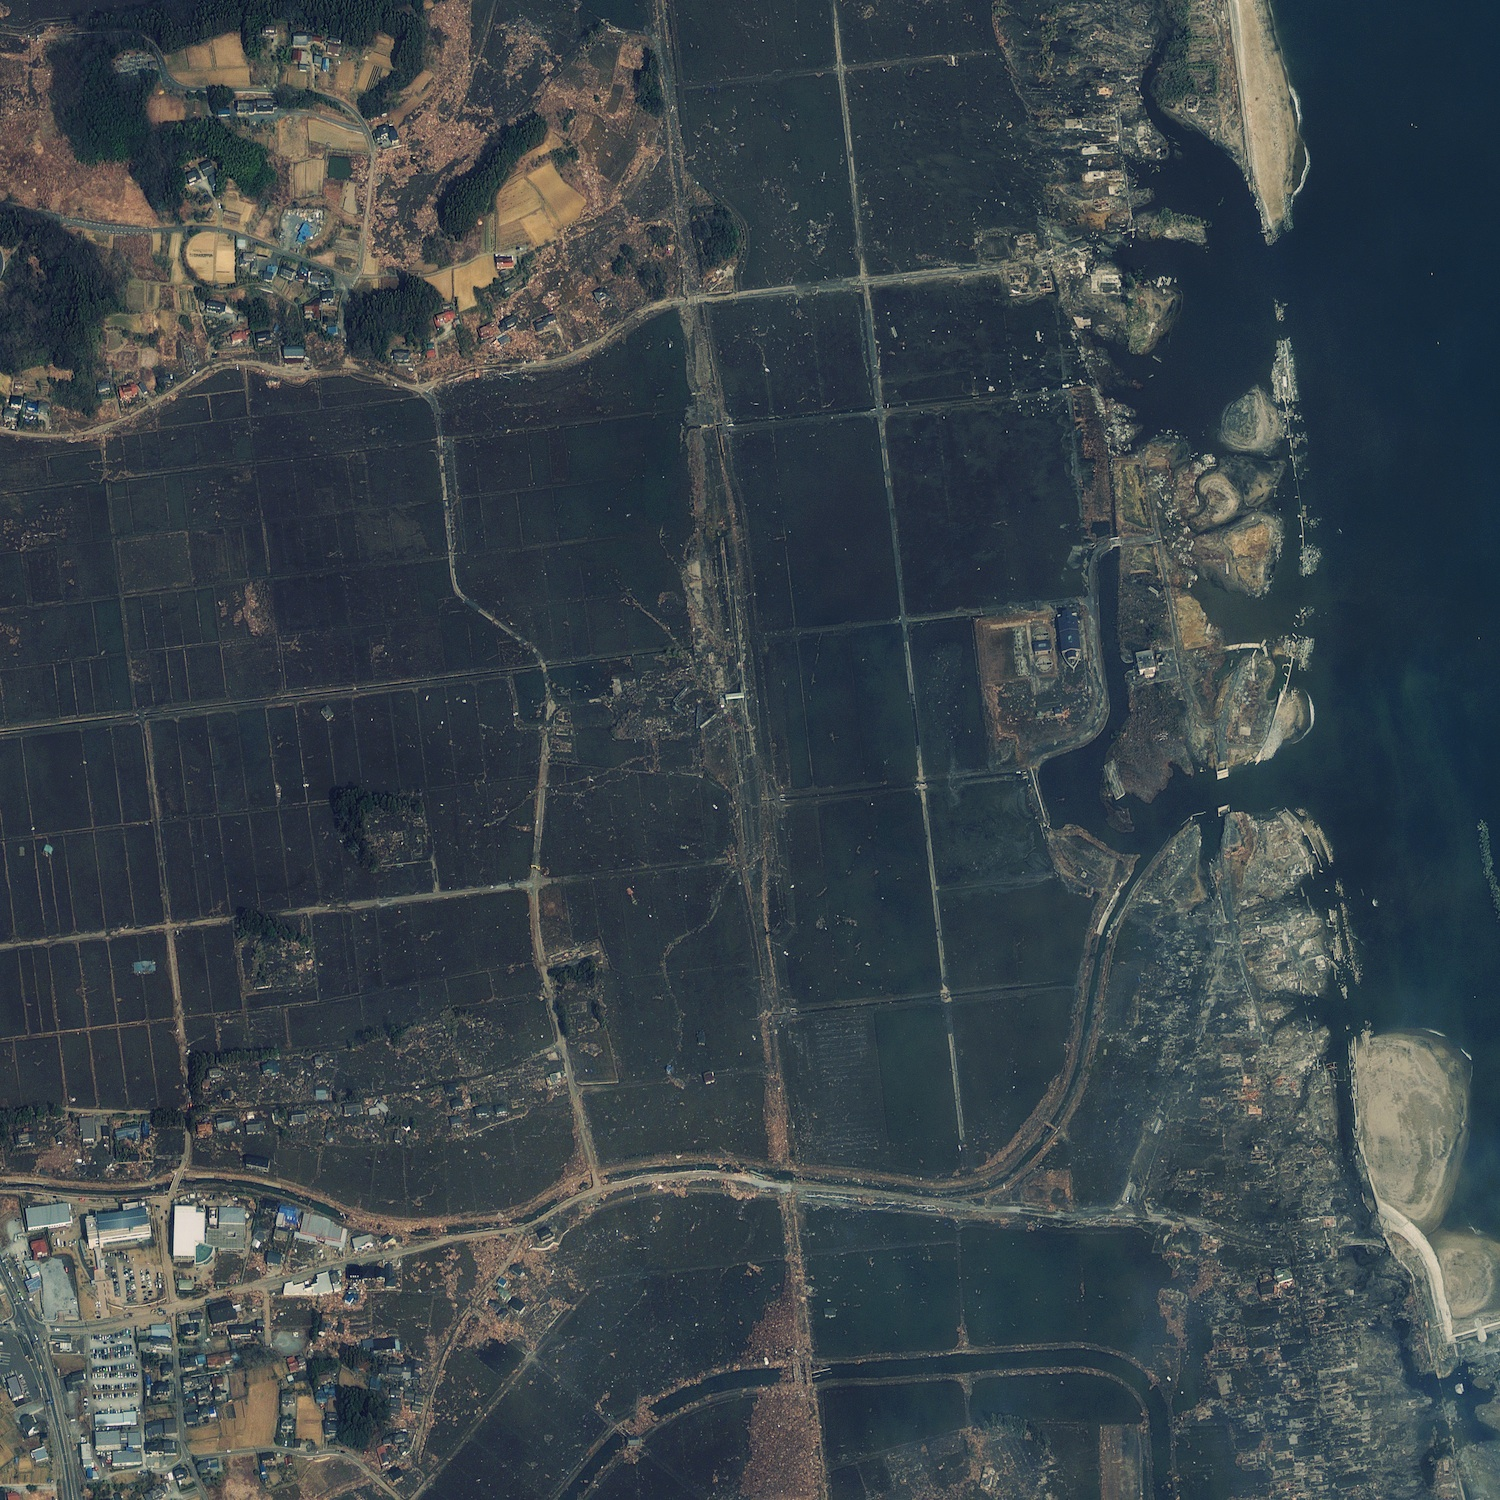 http://spaceflightnow.com/news/n1103/14japan/geoeye_shinchi_1500.jpg